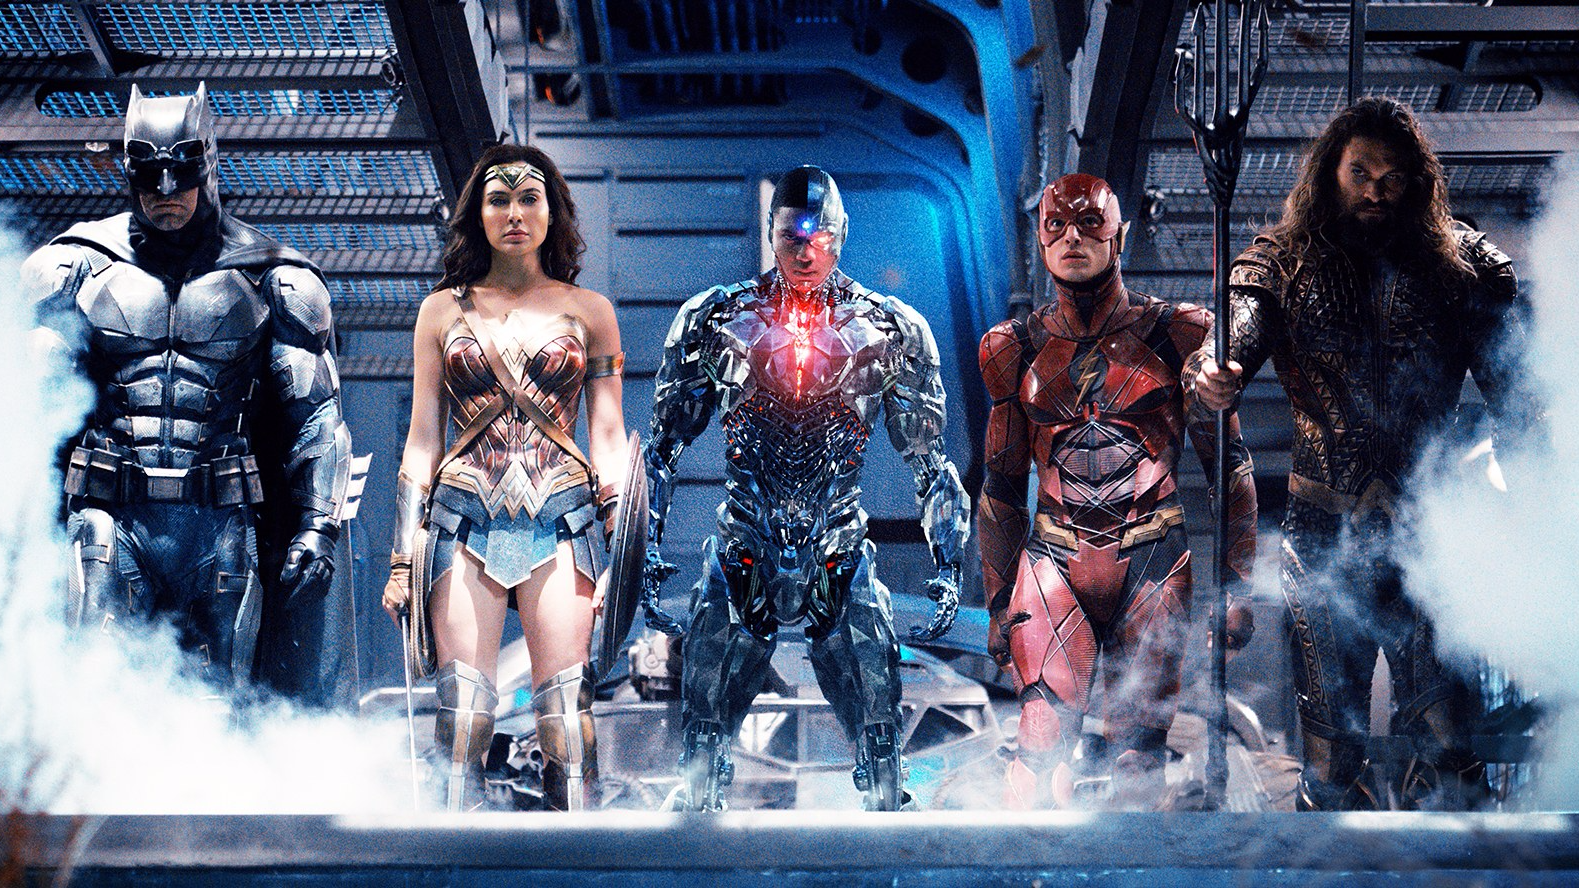 Zack Snyder Fans Petition For The Release Of His Cut Of Justice LeagueAs Deleted Scenes Leak Online